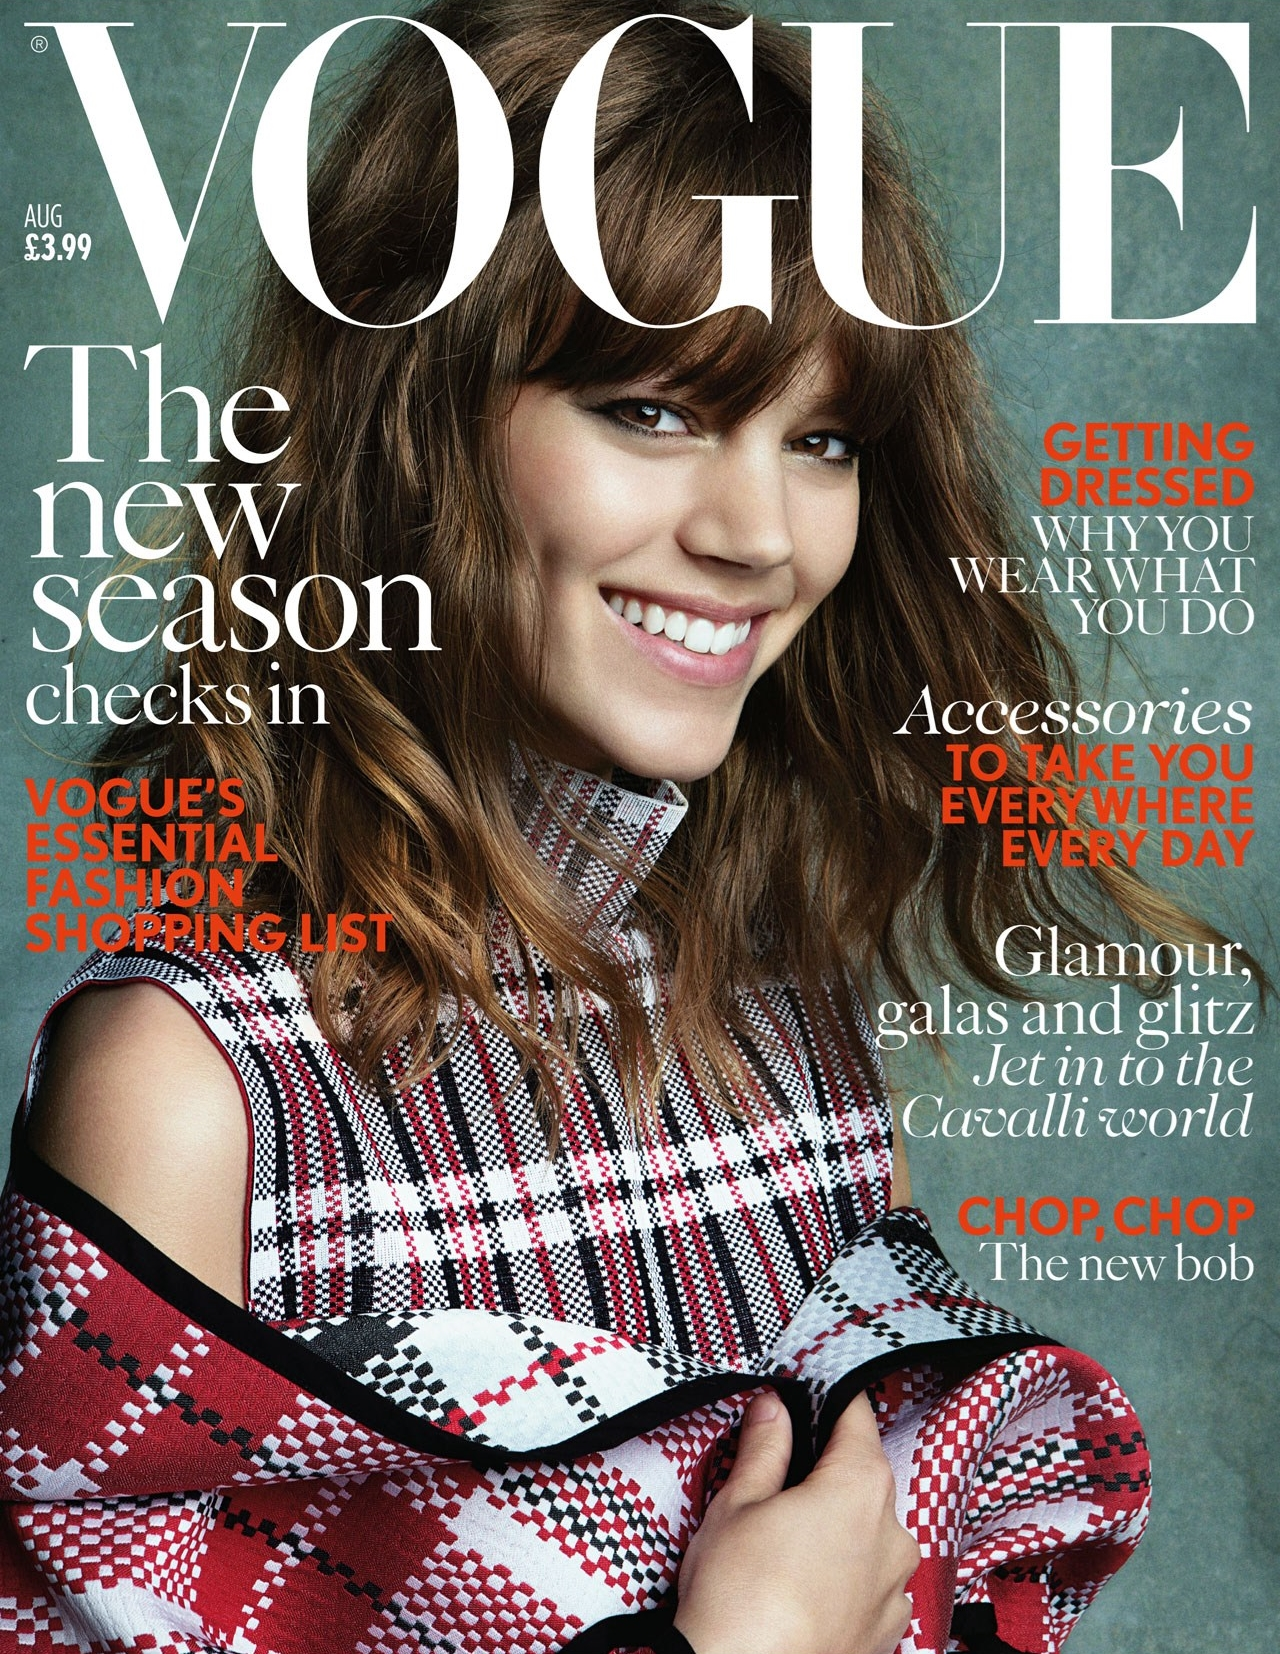 Vo-Aug-13-vogue-2jul13_b